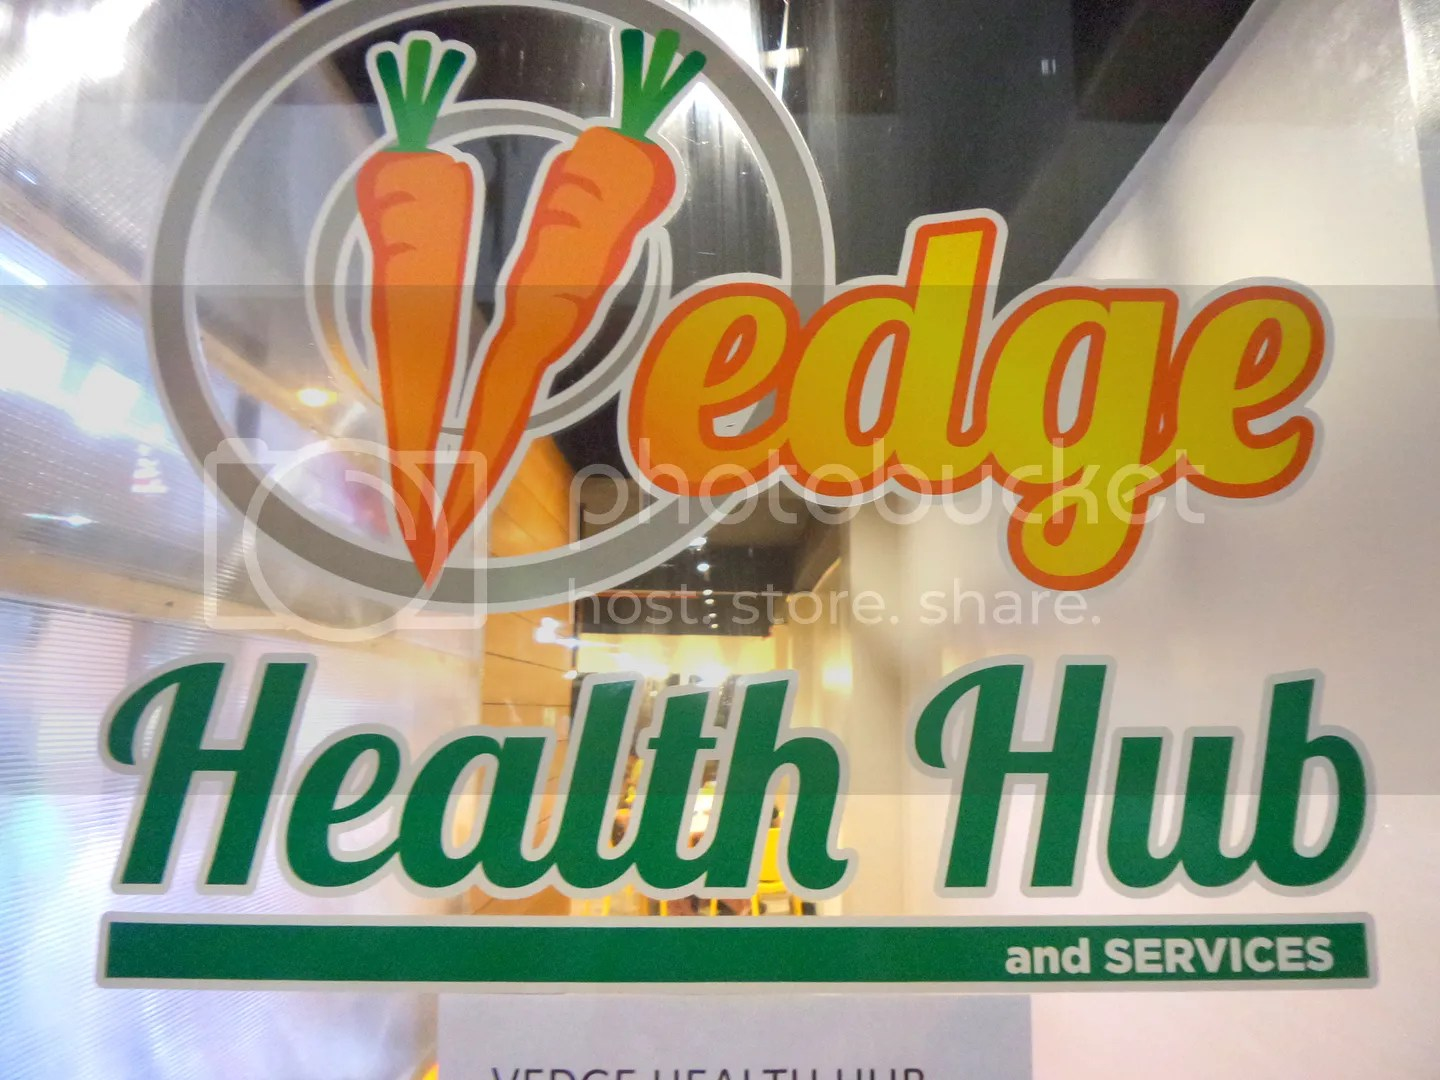 Vedge Health Hub is located at VSB Building, corner Lacson street and 6th street Bacolod City. Telephone number (0932)783 3903